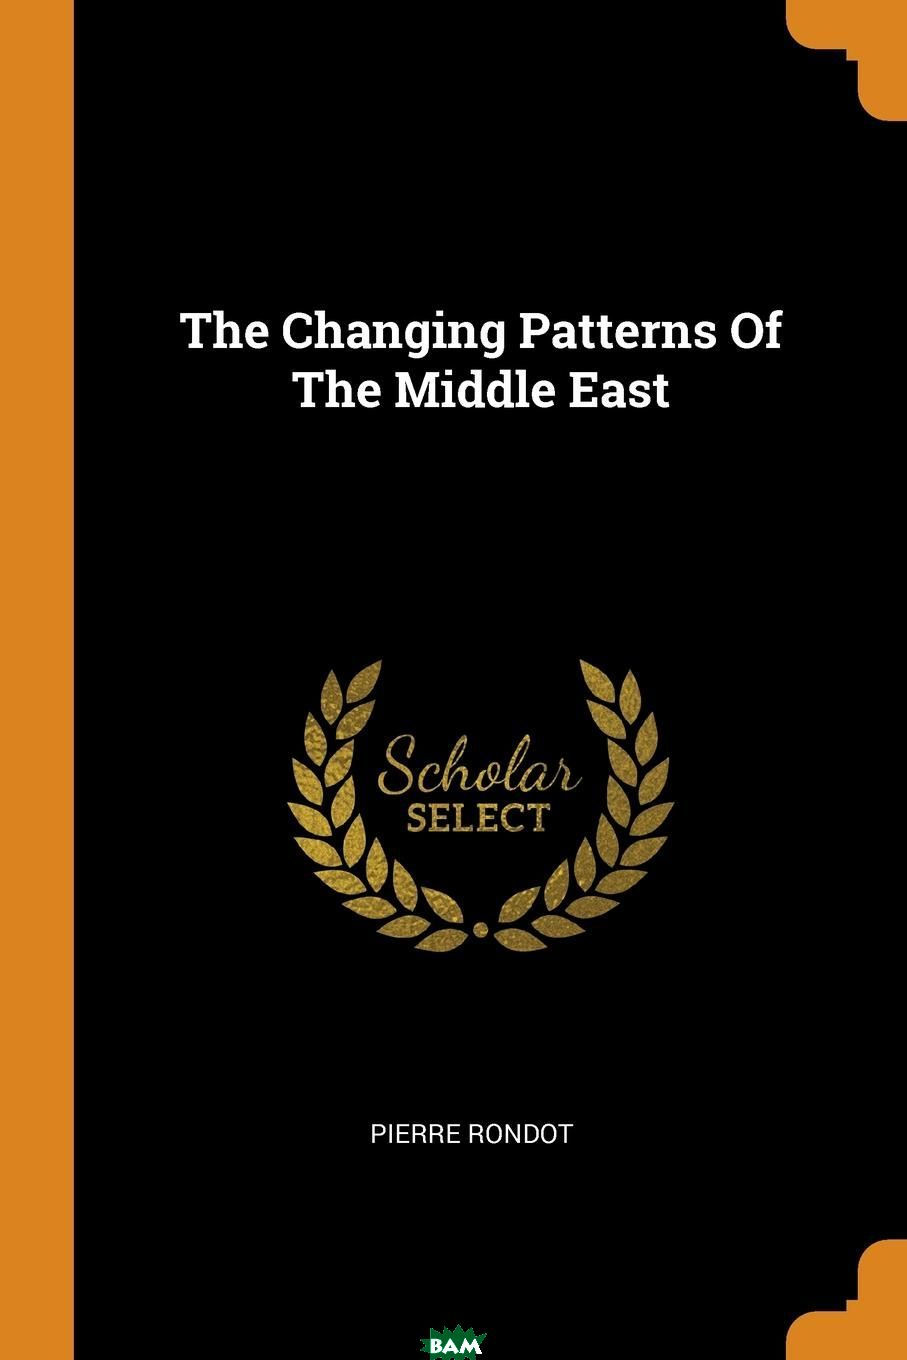 Купить The Changing Patterns Of The Middle East, Pierre Rondot, 9780353190962